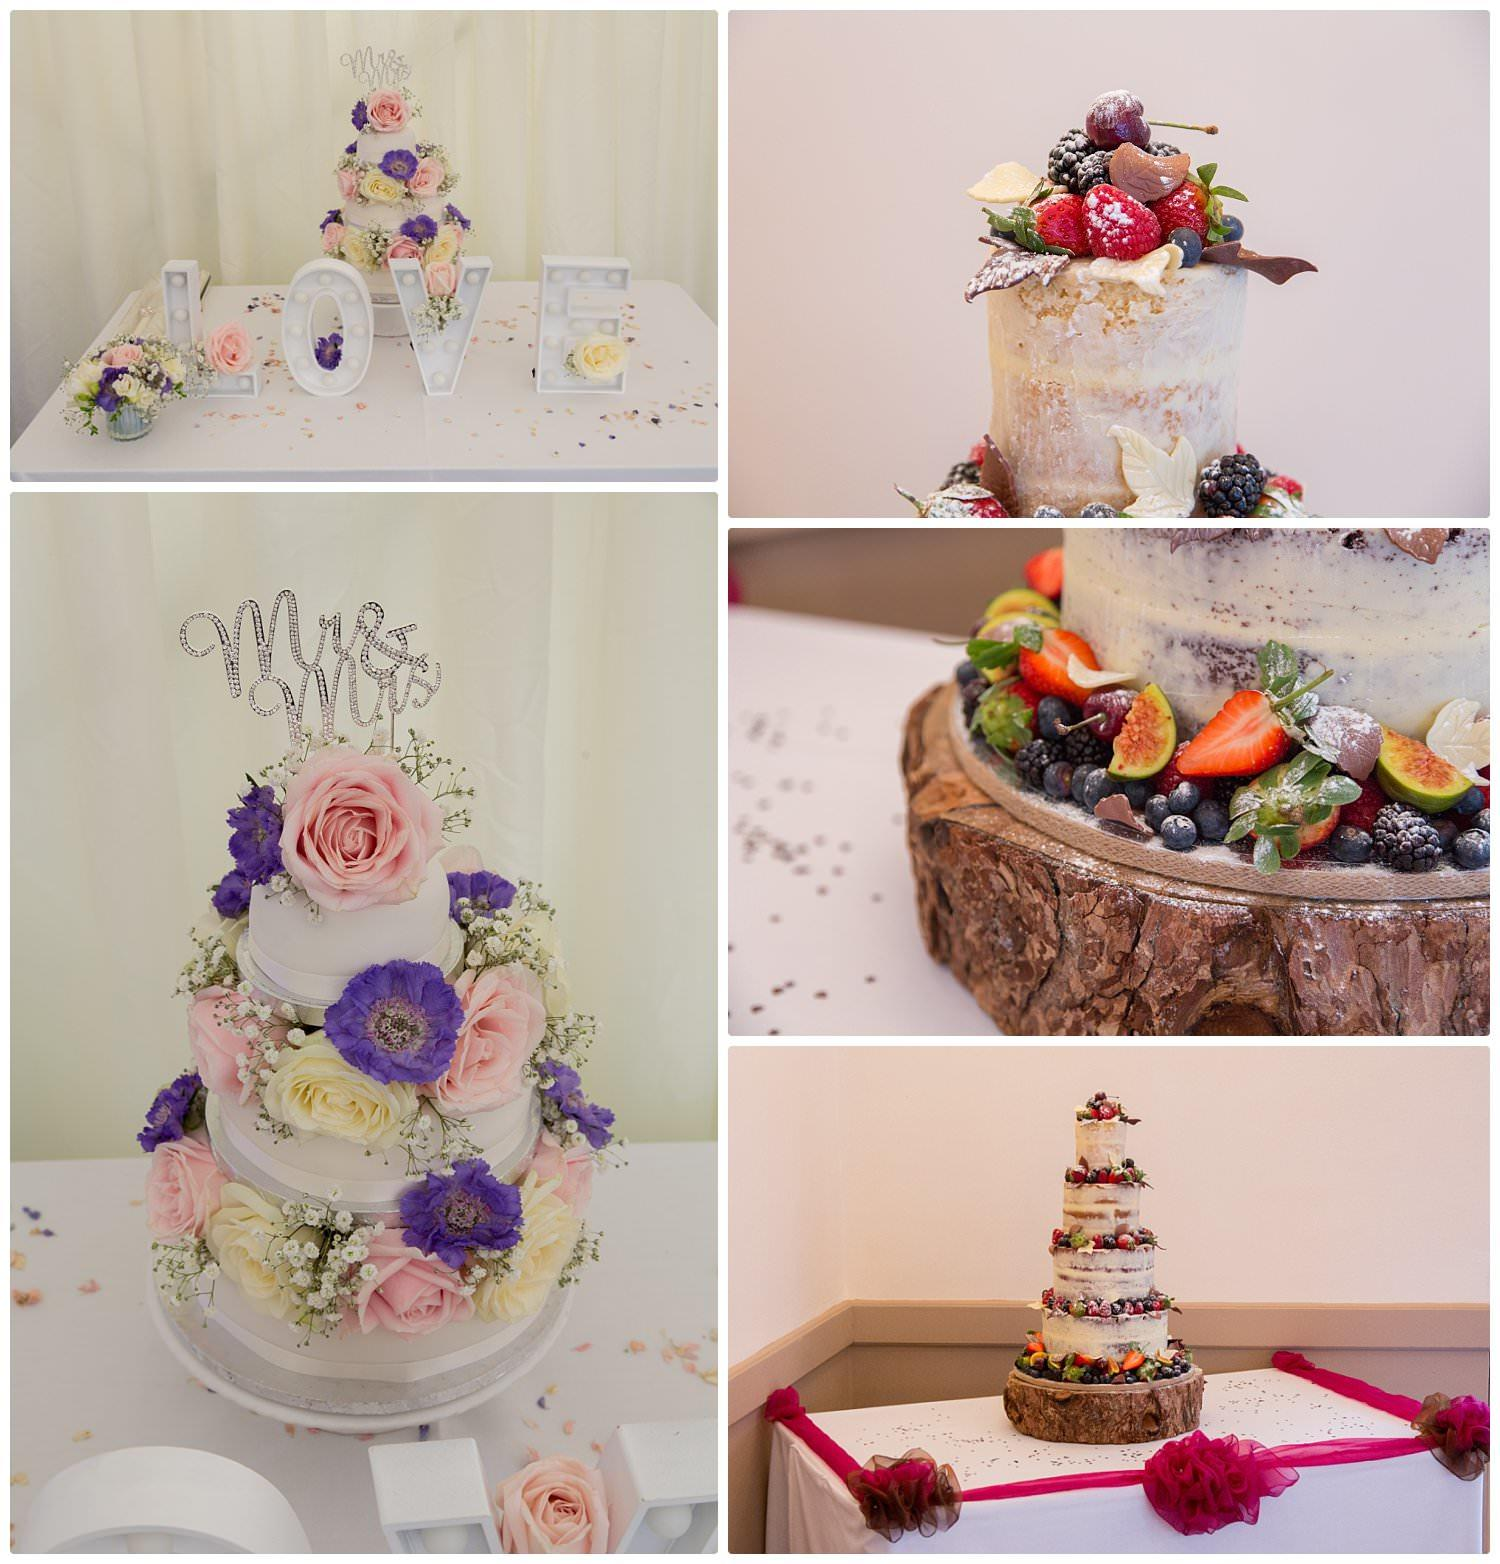 Top tips for choosing your wedding cake-Decor